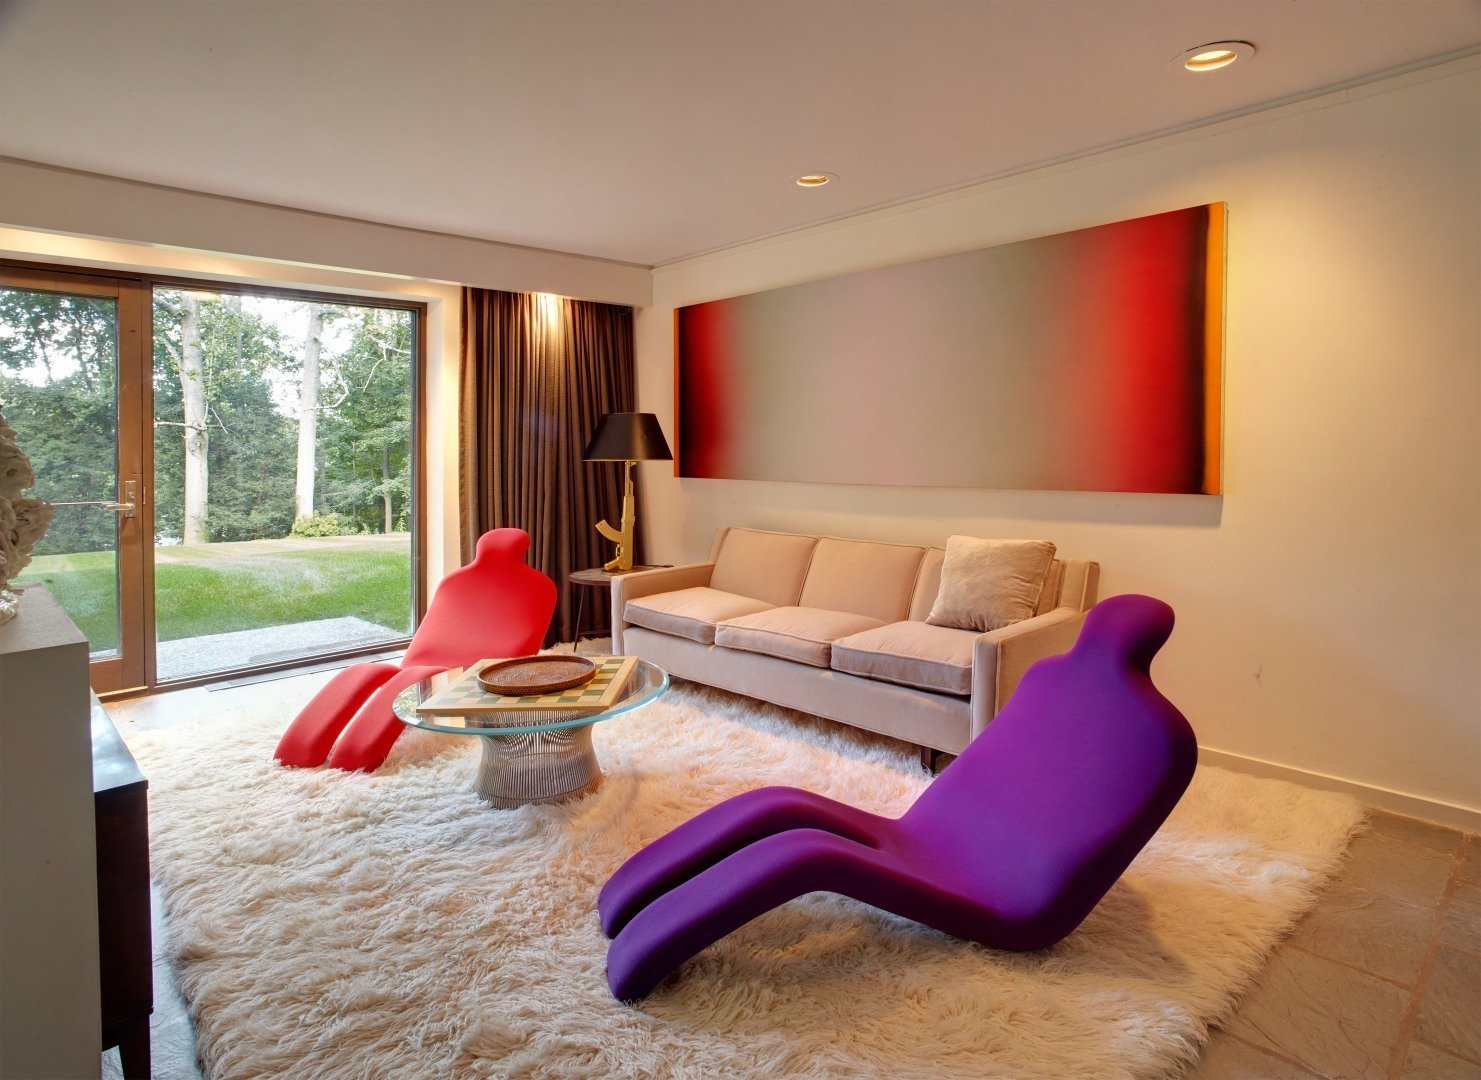 Shown here is the sitting room in the bottom half of the main house. As an art collector, the current homeowner has filled the entire interior with bold statement pieces.